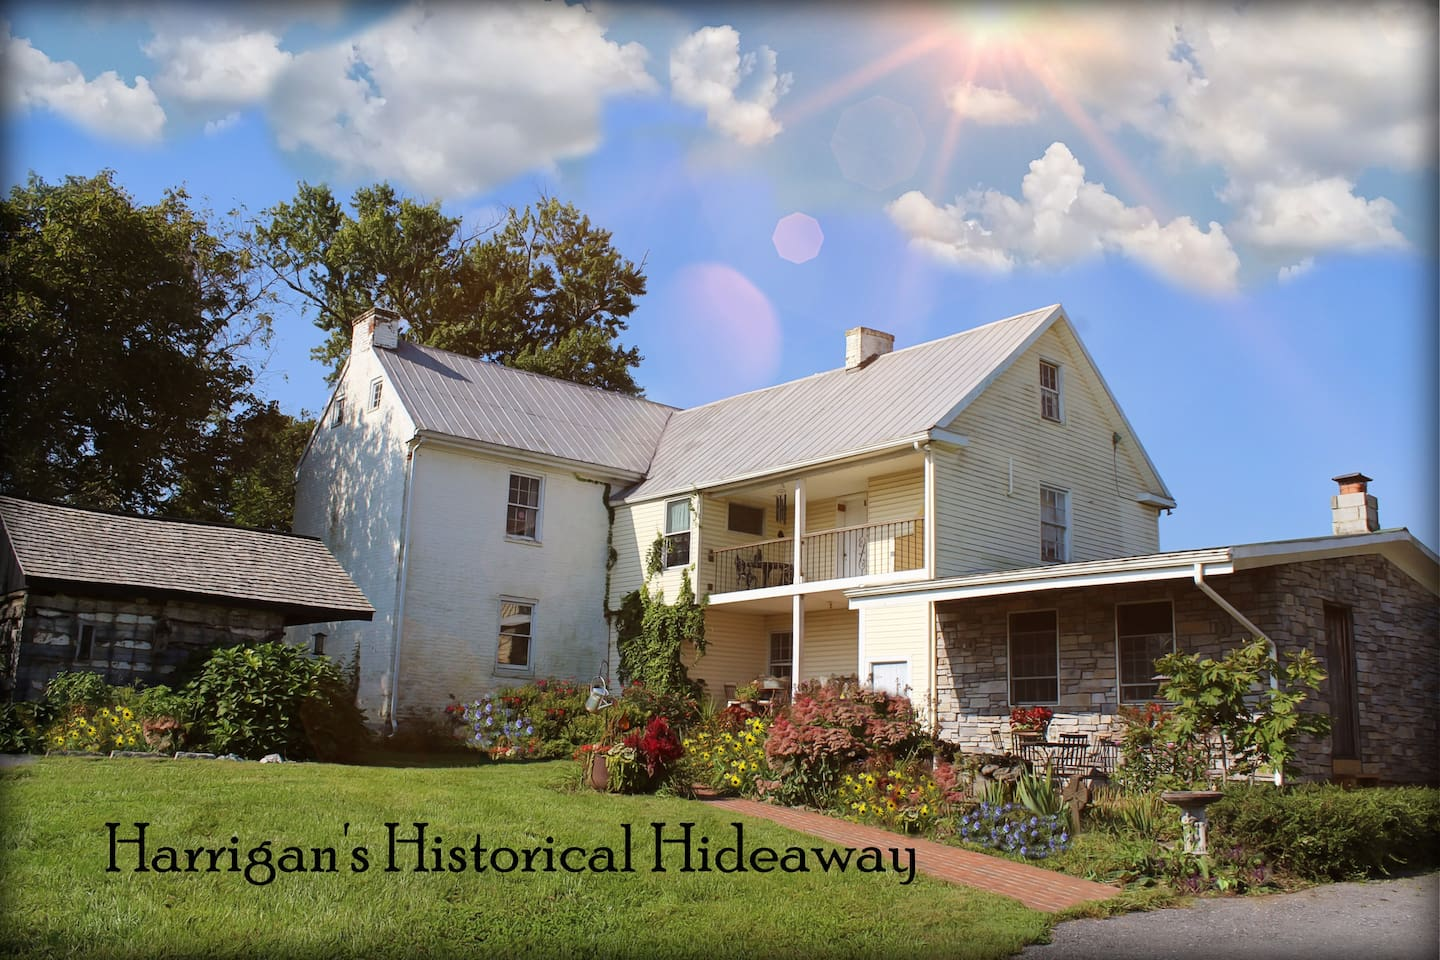 Maureen Harrigan is the owner of this lovely home, and hostess of her private, cozy guest room, Harrigan's Historic Hideaway. Maureen & Michael make all guests feel welcome.